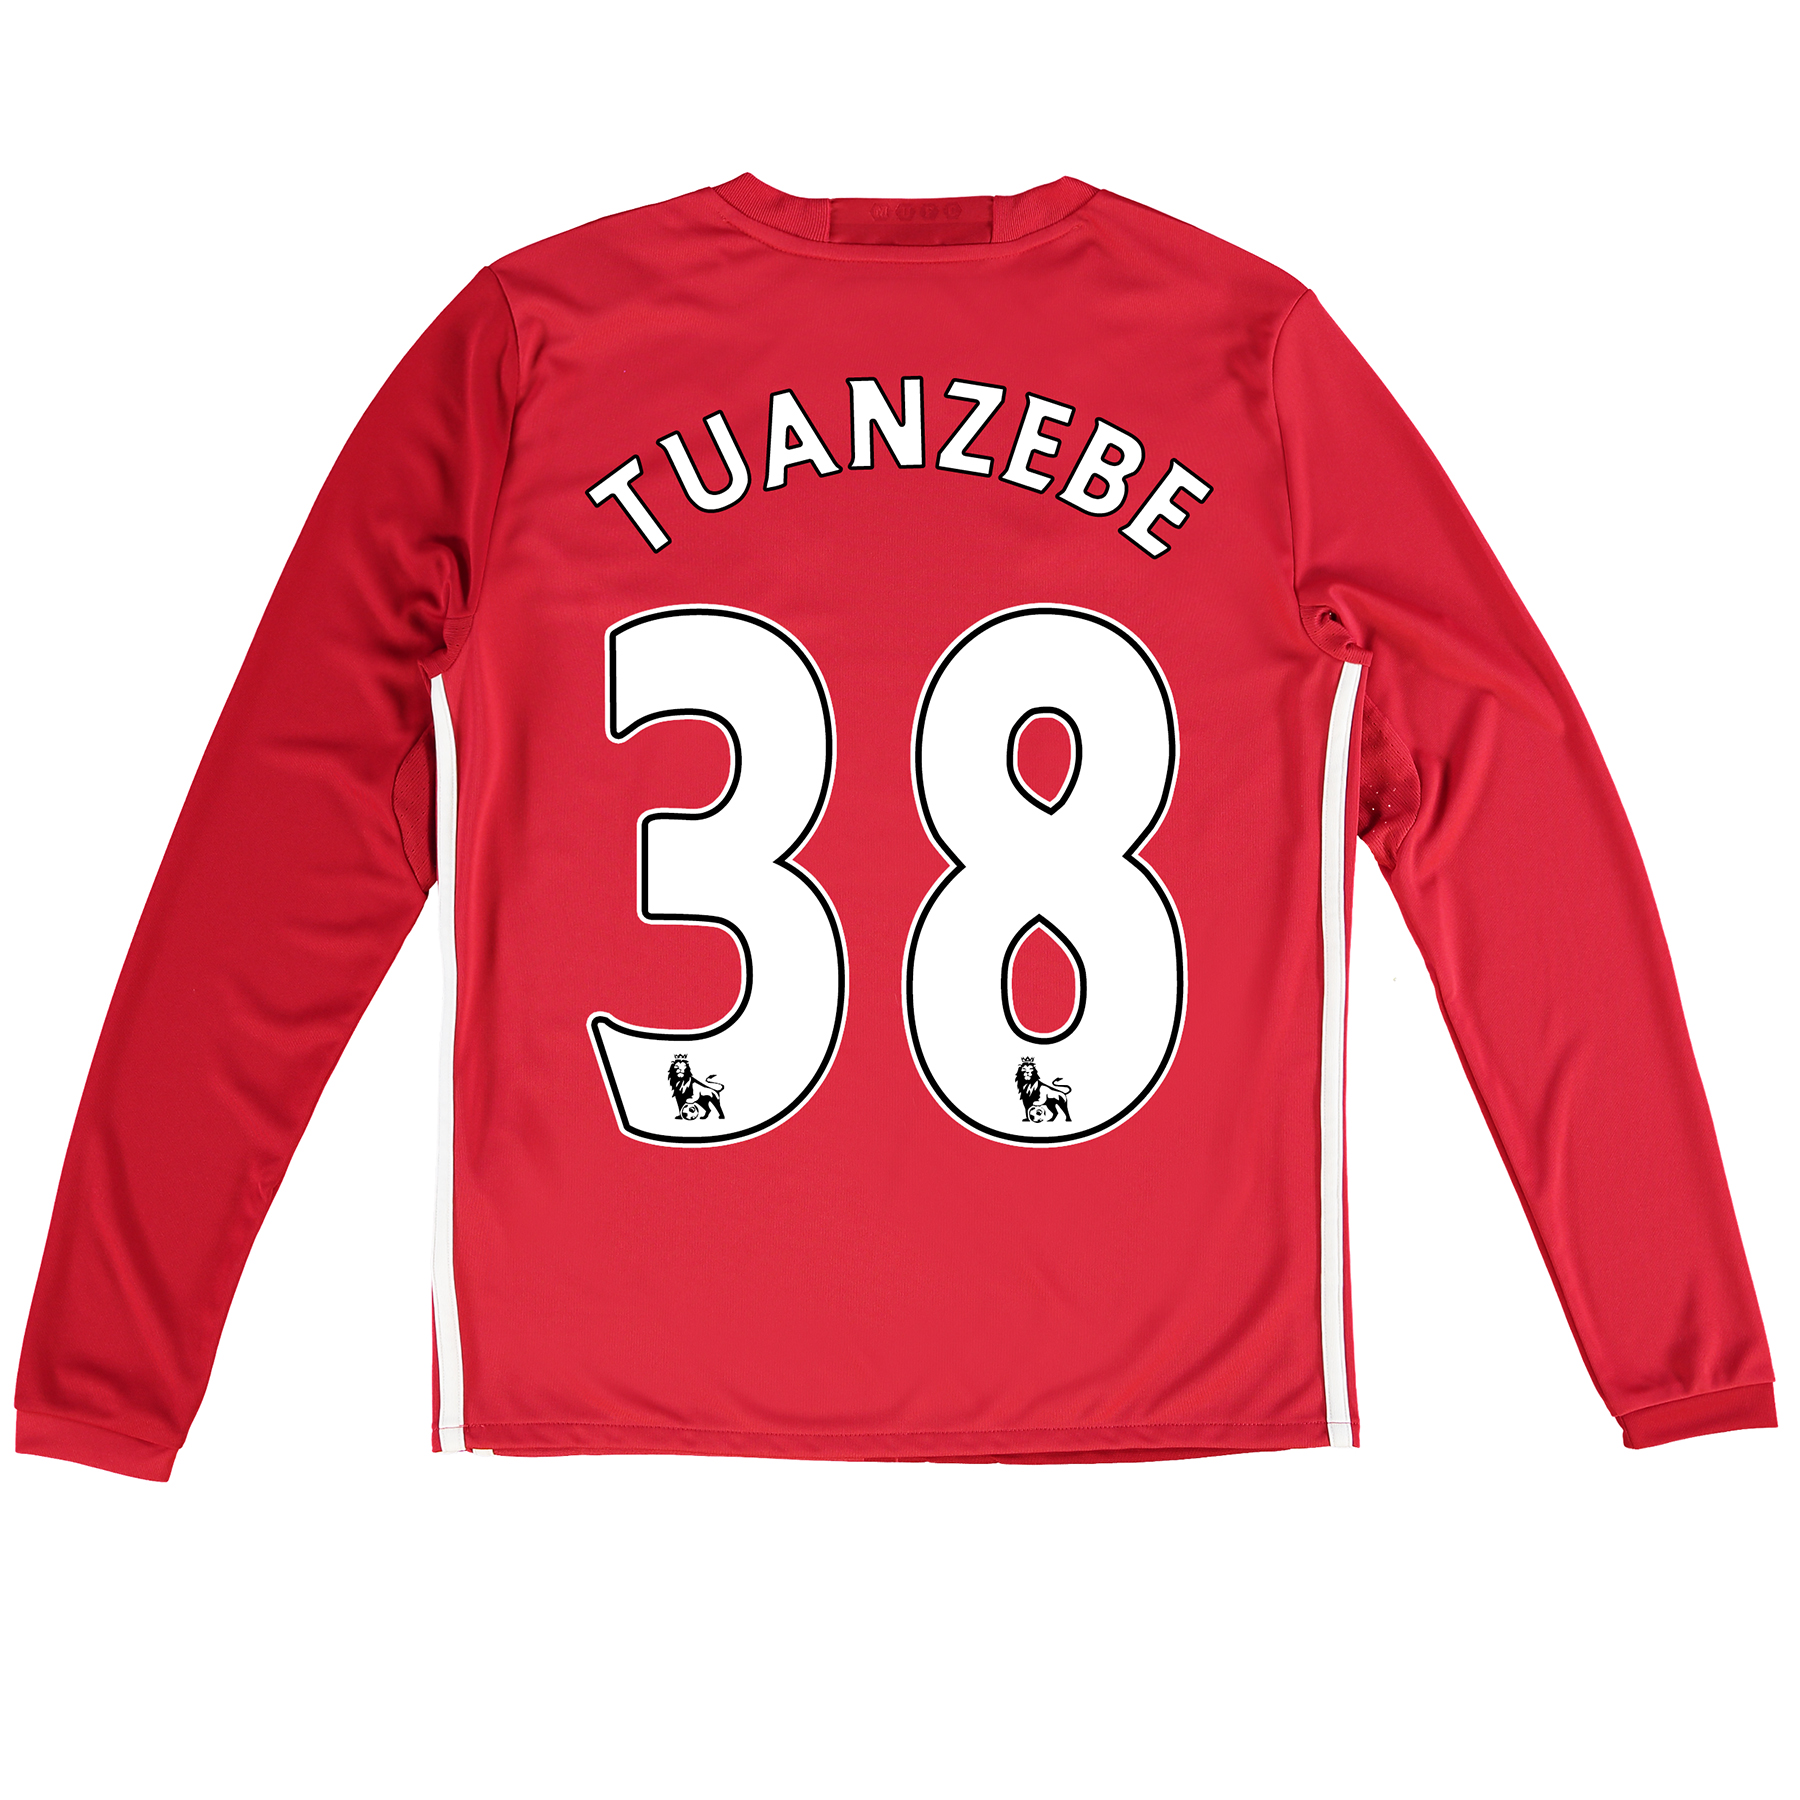 Manchester United Home Shirt 2016-17 - Kids - Long Sleeve with Tuanzeb